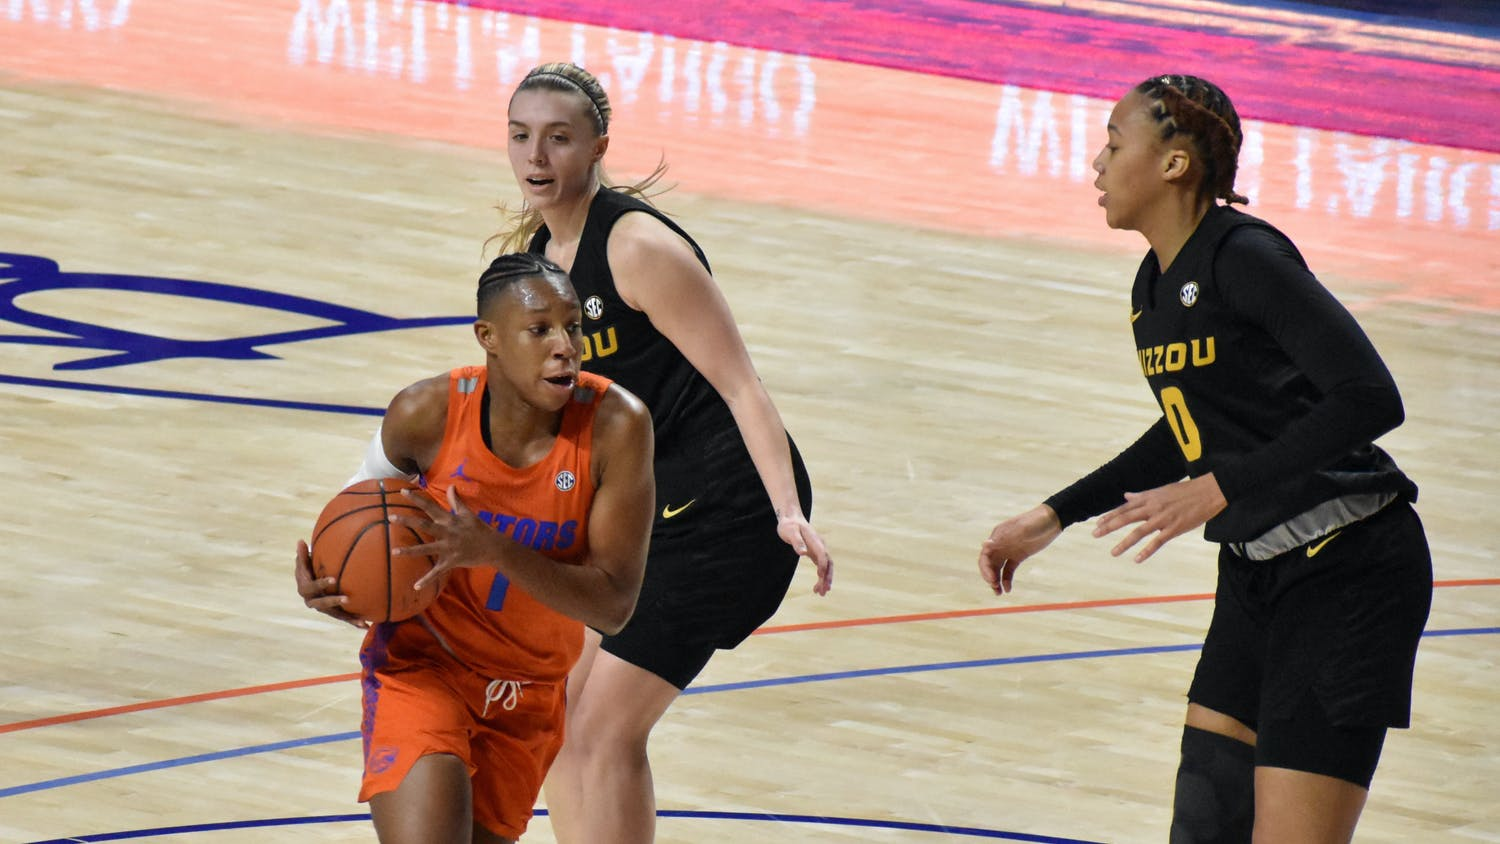 Kiara Smith, one of the Gators' top scorers, underperformed against Missouri Thursday night.